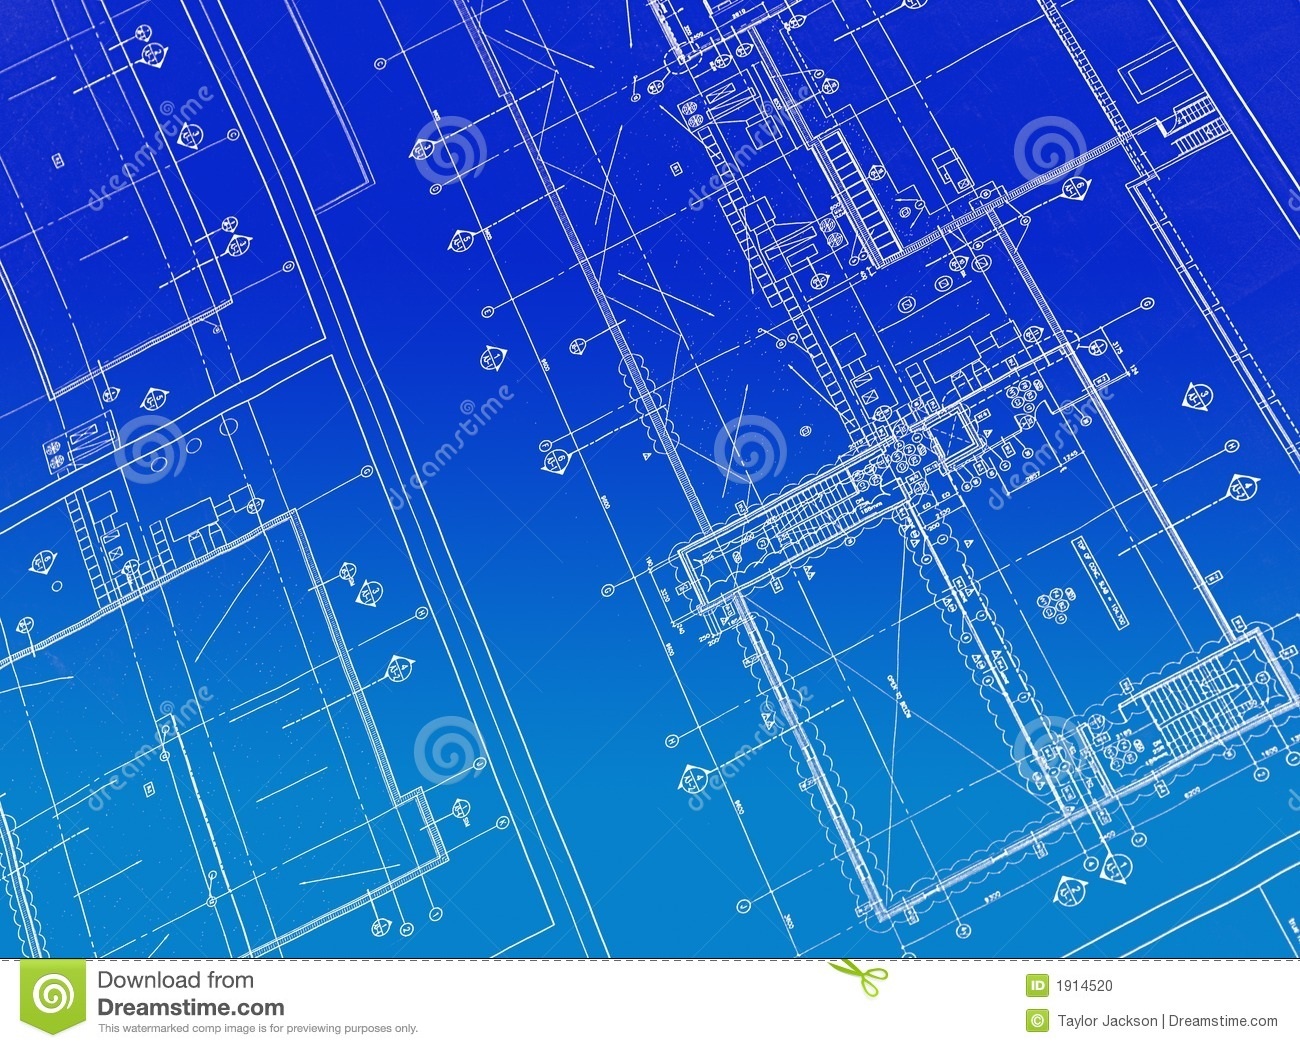 Blueprint Symbols And Terms